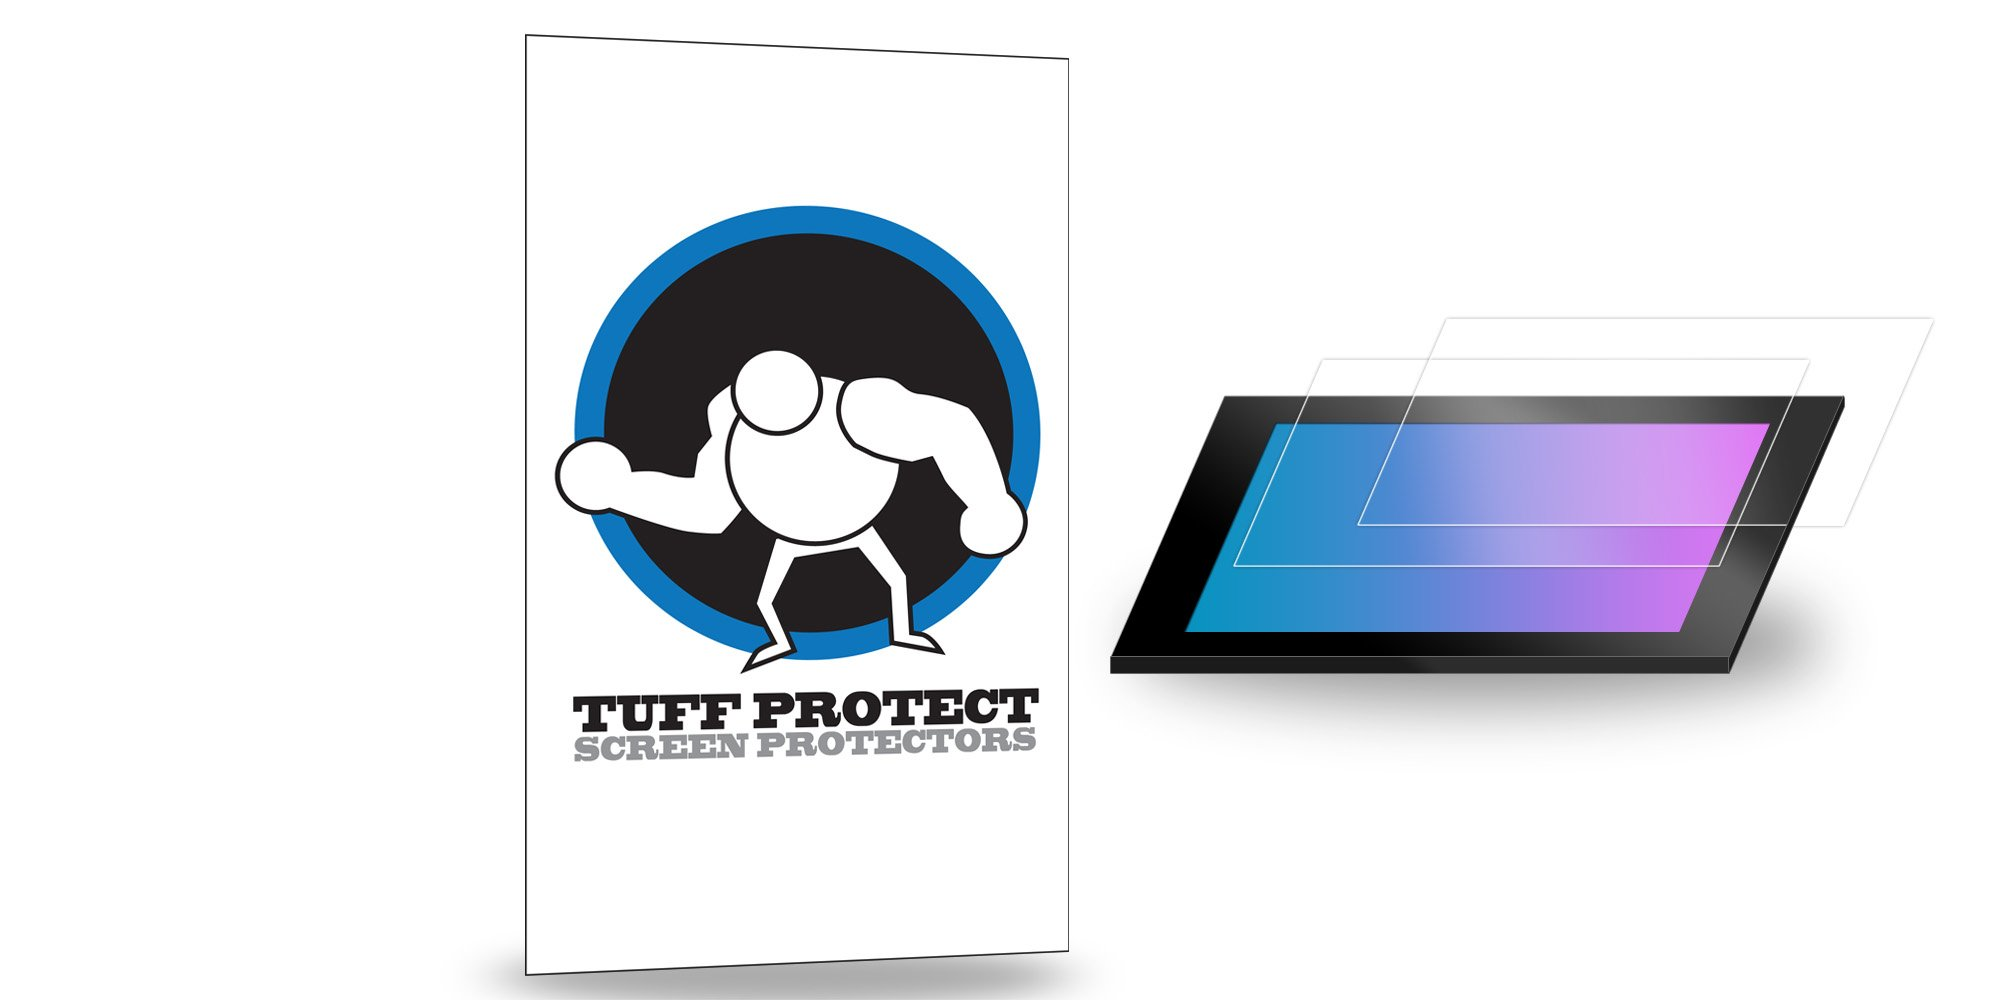 Tuff Protect Screen Protectors for Humminbird Helix 7 Sonar/Helix 7 Chirp Screen (Matte Finish) by Tuff Protect Screen Protectors